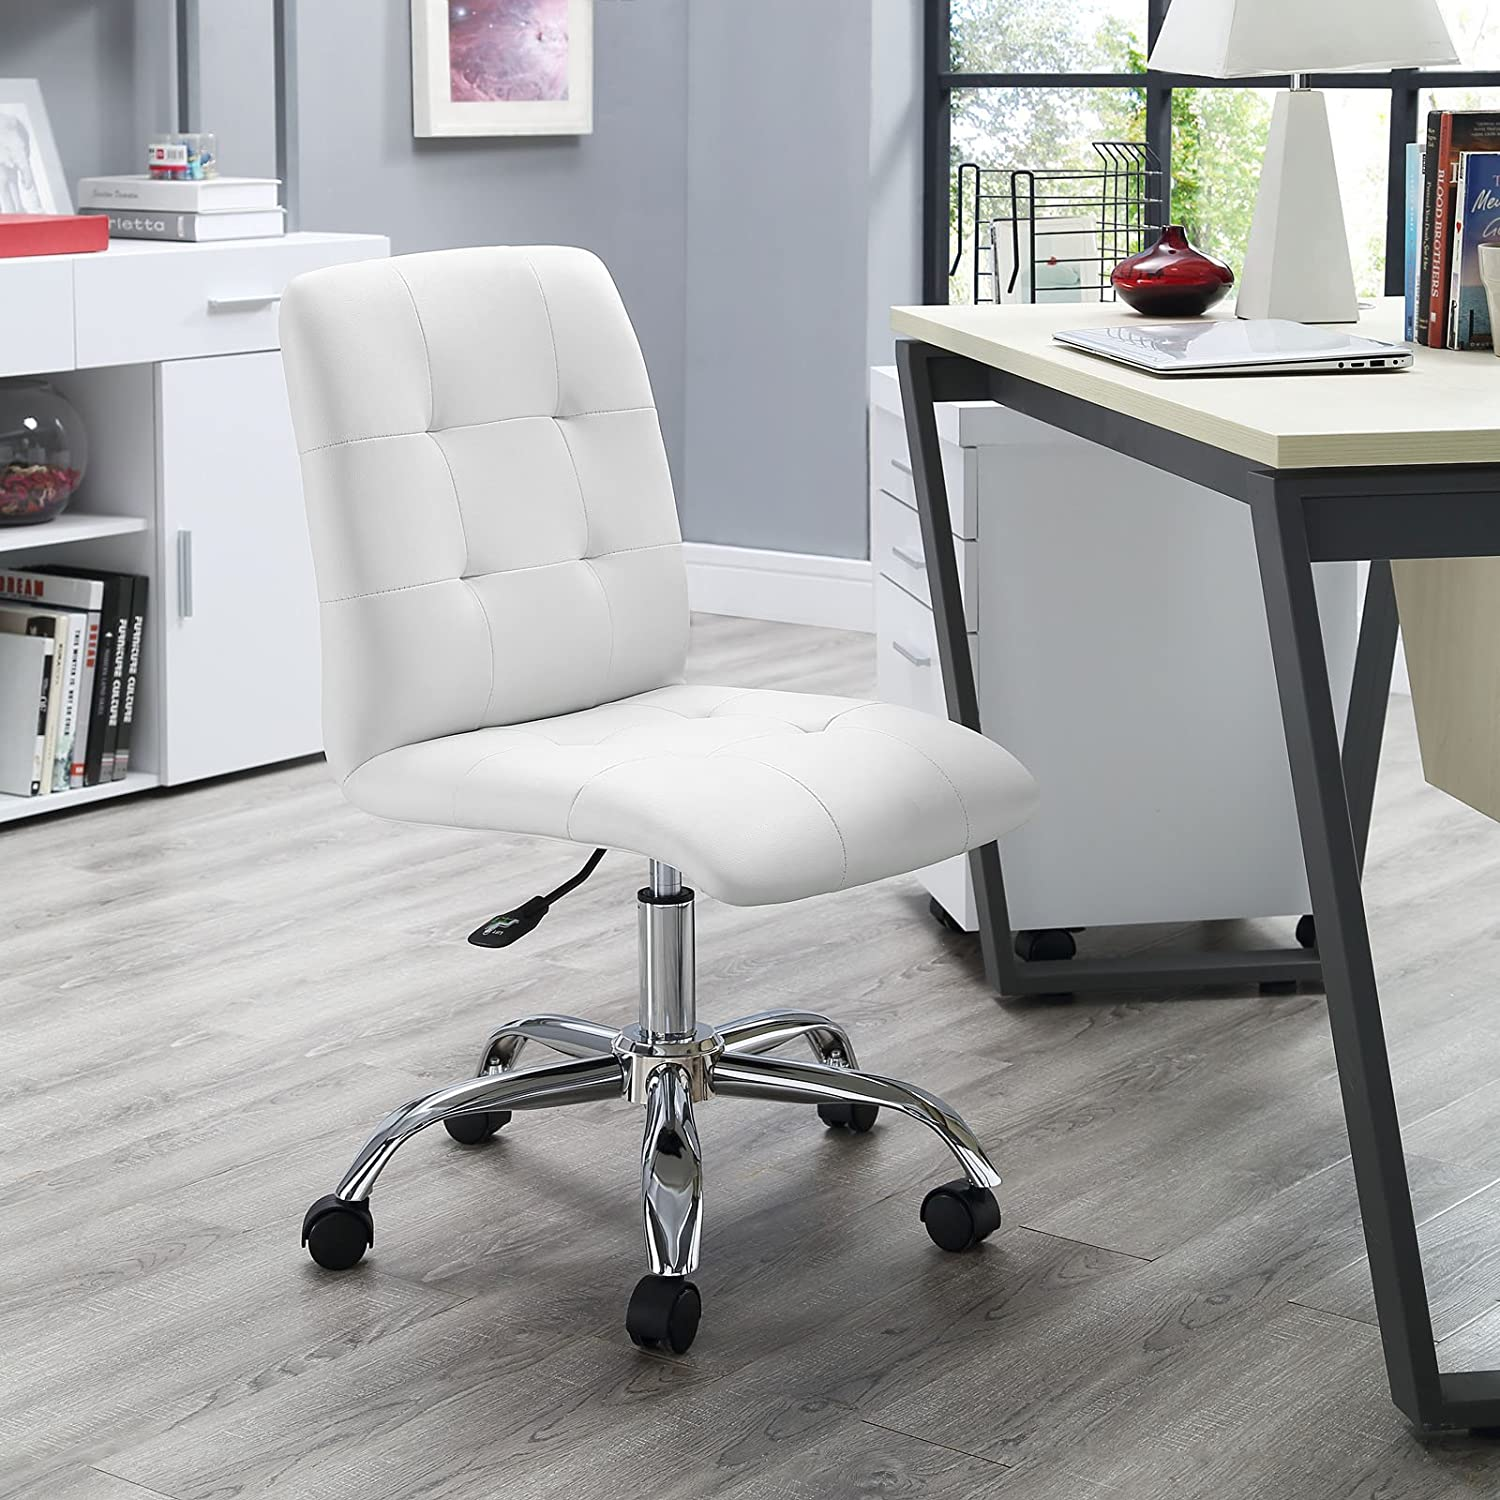 Amazon Modway Prim Mid Back fice Chair White Kitchen & Dining